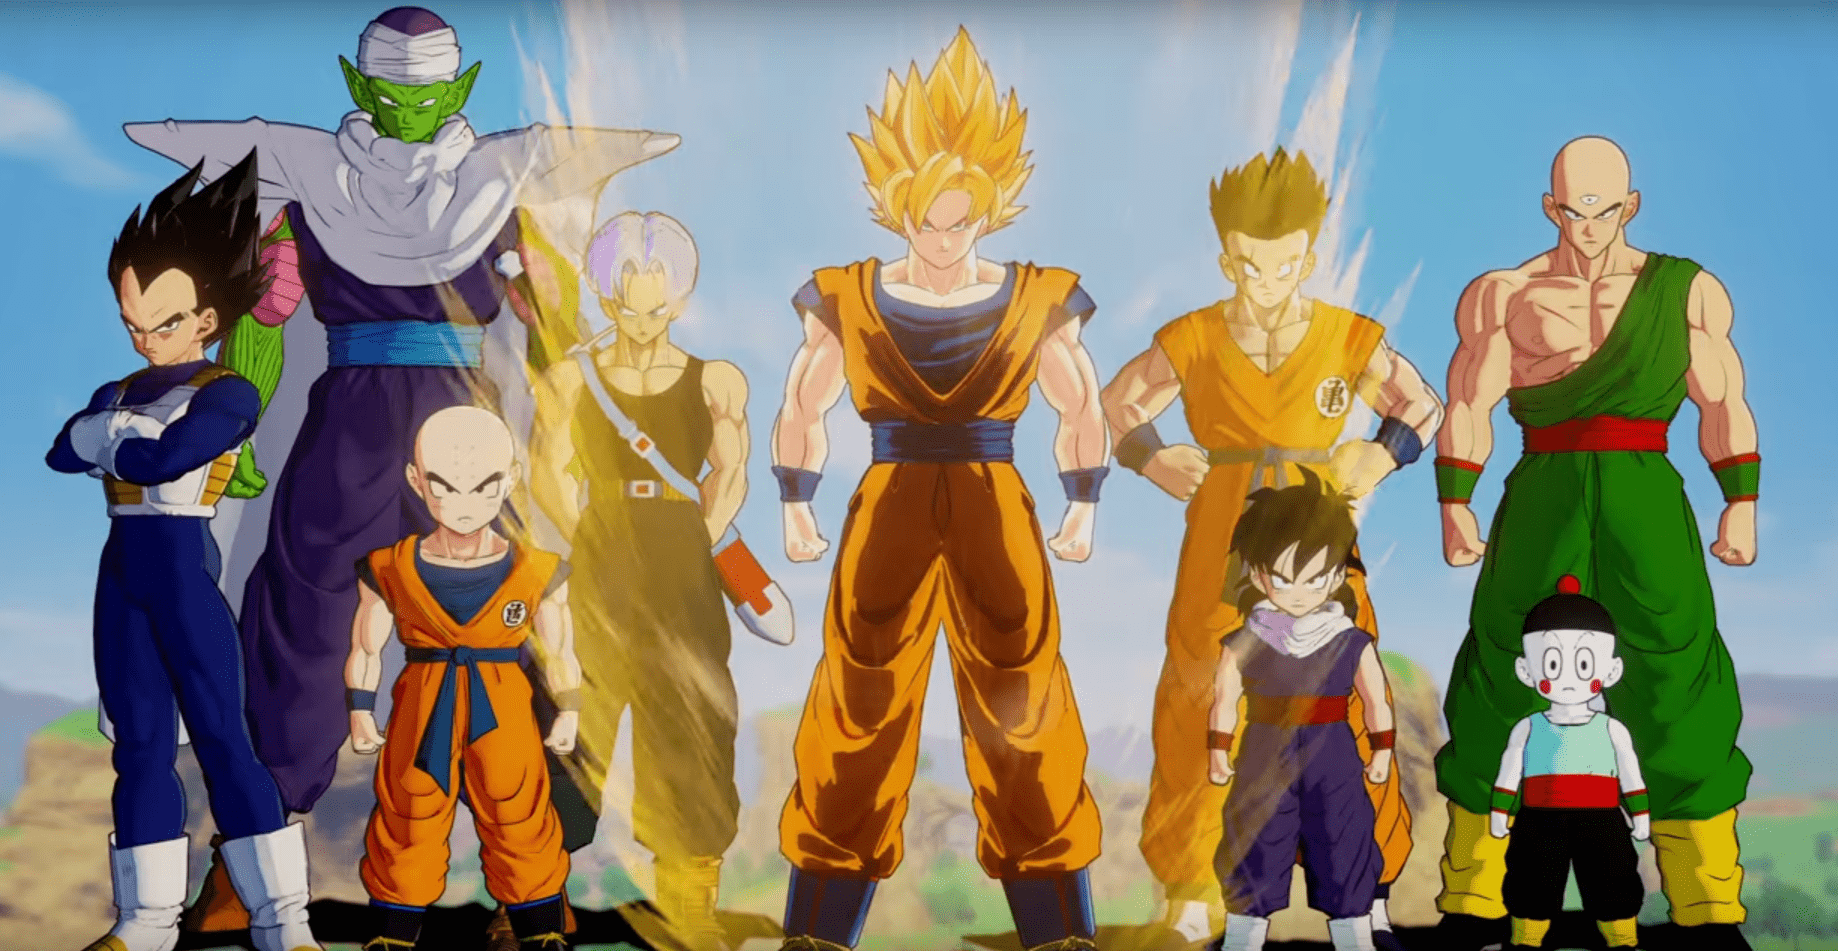 Dragon Ball Z Kakarot Releases A New Patch, And Here's Everything That Was Updated Or Added  happygamer.com #GAMES #happygamer #gamesnews #gaming #games